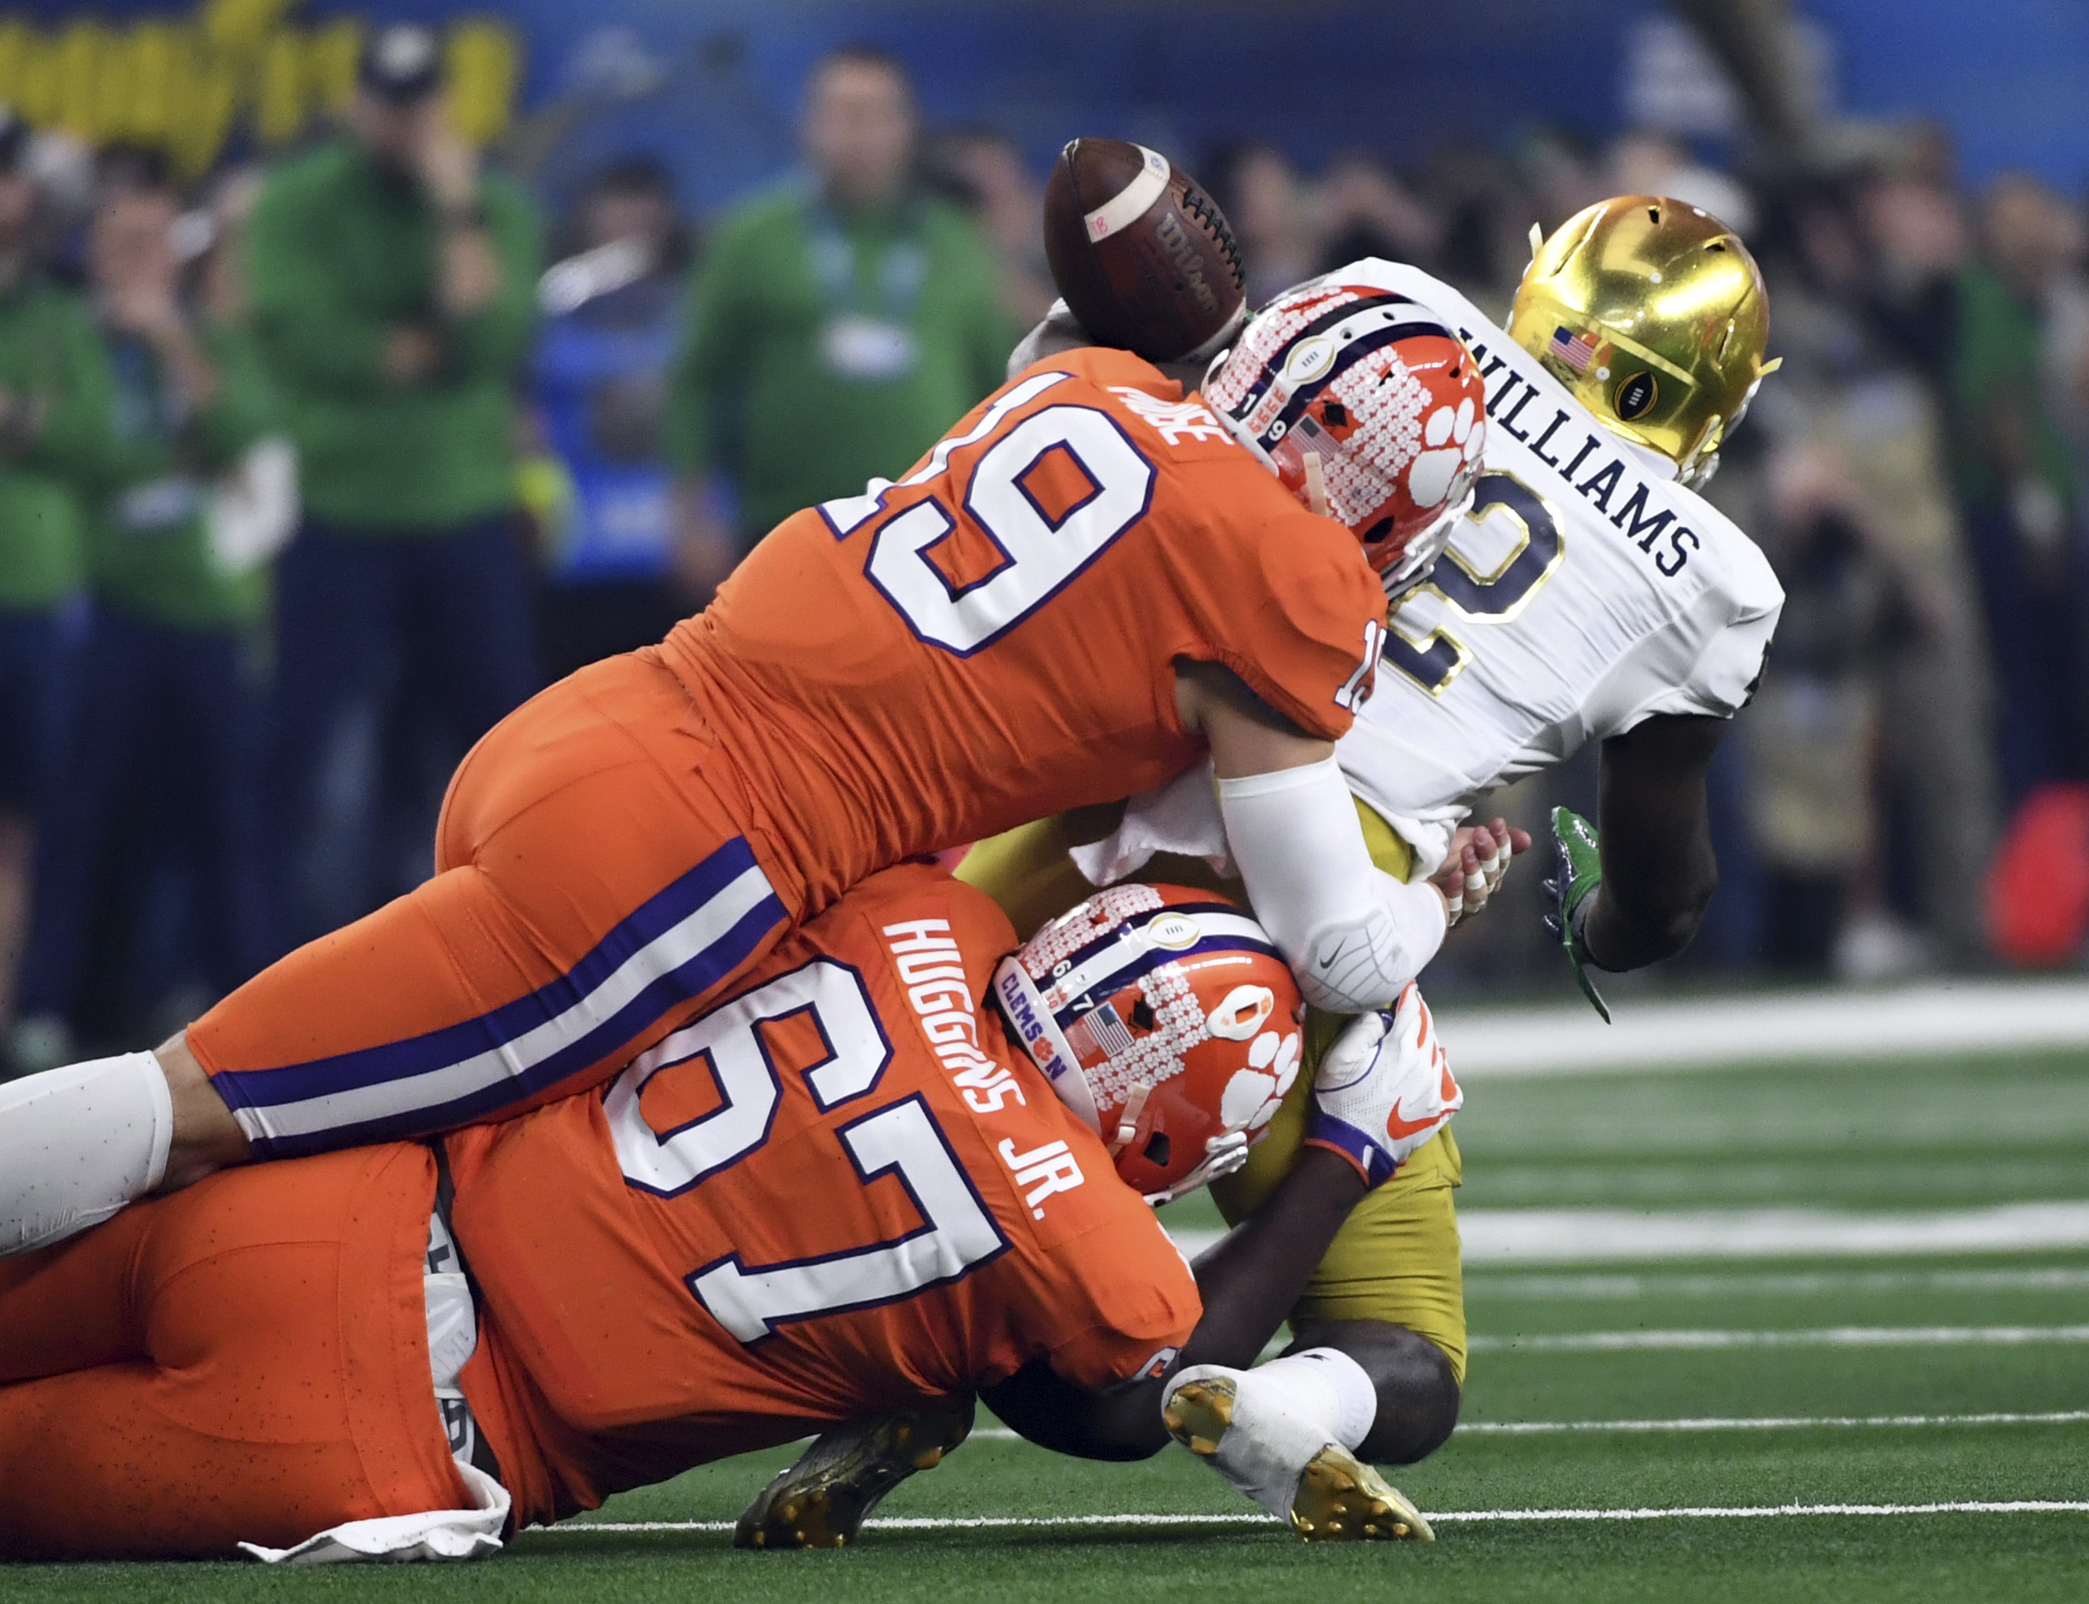 Clemson safety Tanner Muse (19) and defensive tackle Albert Huggins (67) combine to strip the ball away from Notre Dame running back Dexter Williams (2) in the first half of the NCAA Cotton Bowl semi-final playoff football game, Saturday, Dec. 29, 2018, in Arlington, Texas. (AP Photo/Jeffrey McWhorter)